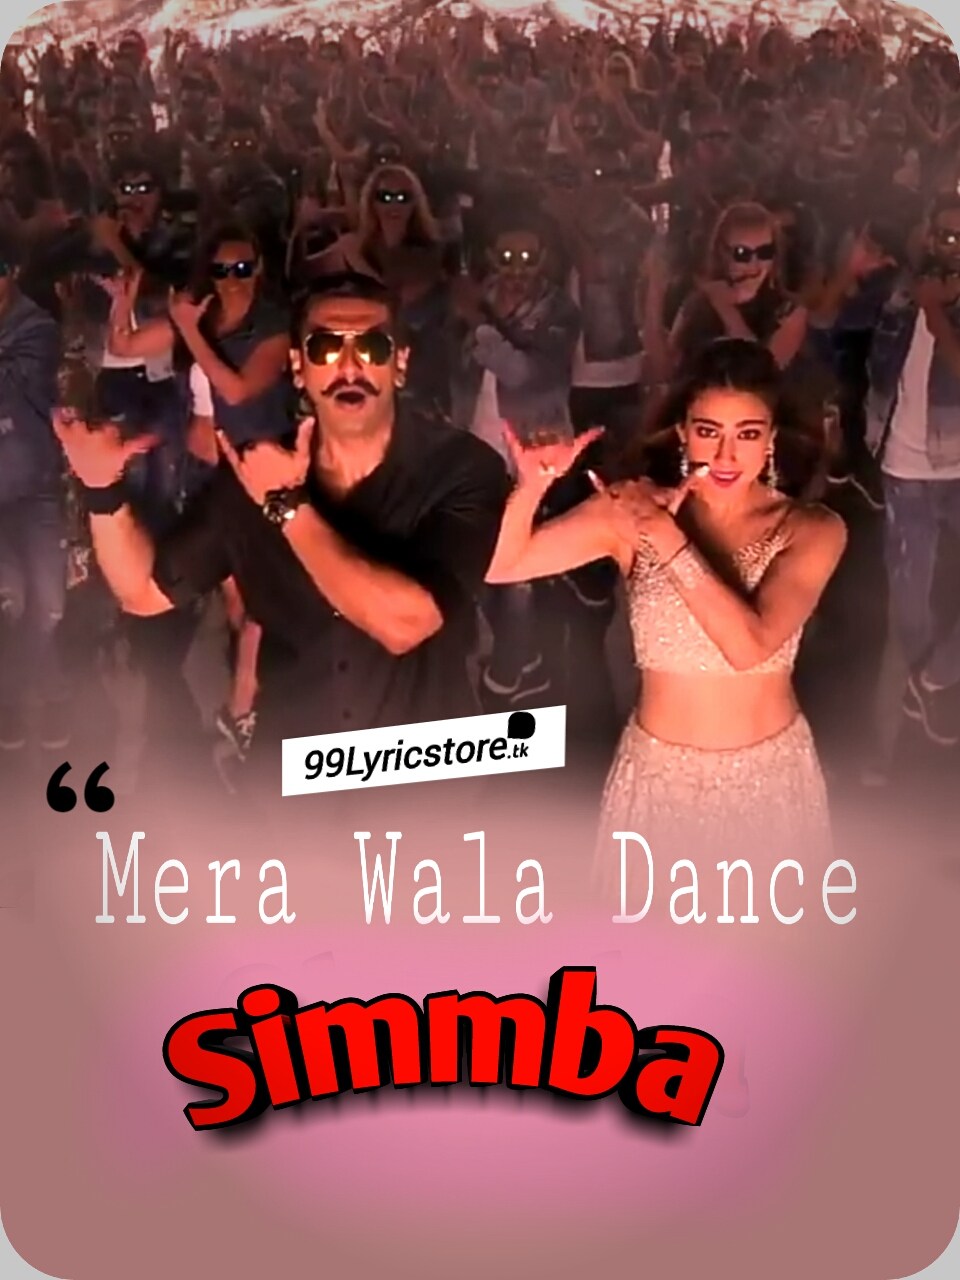 Simmba Movie Song Lyrics, Mera wala dance Song Lyrics, Mera wala dance Simmba Song Lyrics, Neha kakkar Mera wala dance Simmba Song Lyrics, Nakash Aziz Mera wala dance Song Lyrics, Mera wala dance Simmba Movie Images, Mera wala dance Song images, Mera wala dance DJ Chetas Song Lyrics, latest Bollywood Movie Song Lyrics, Simmba songs Lyrics